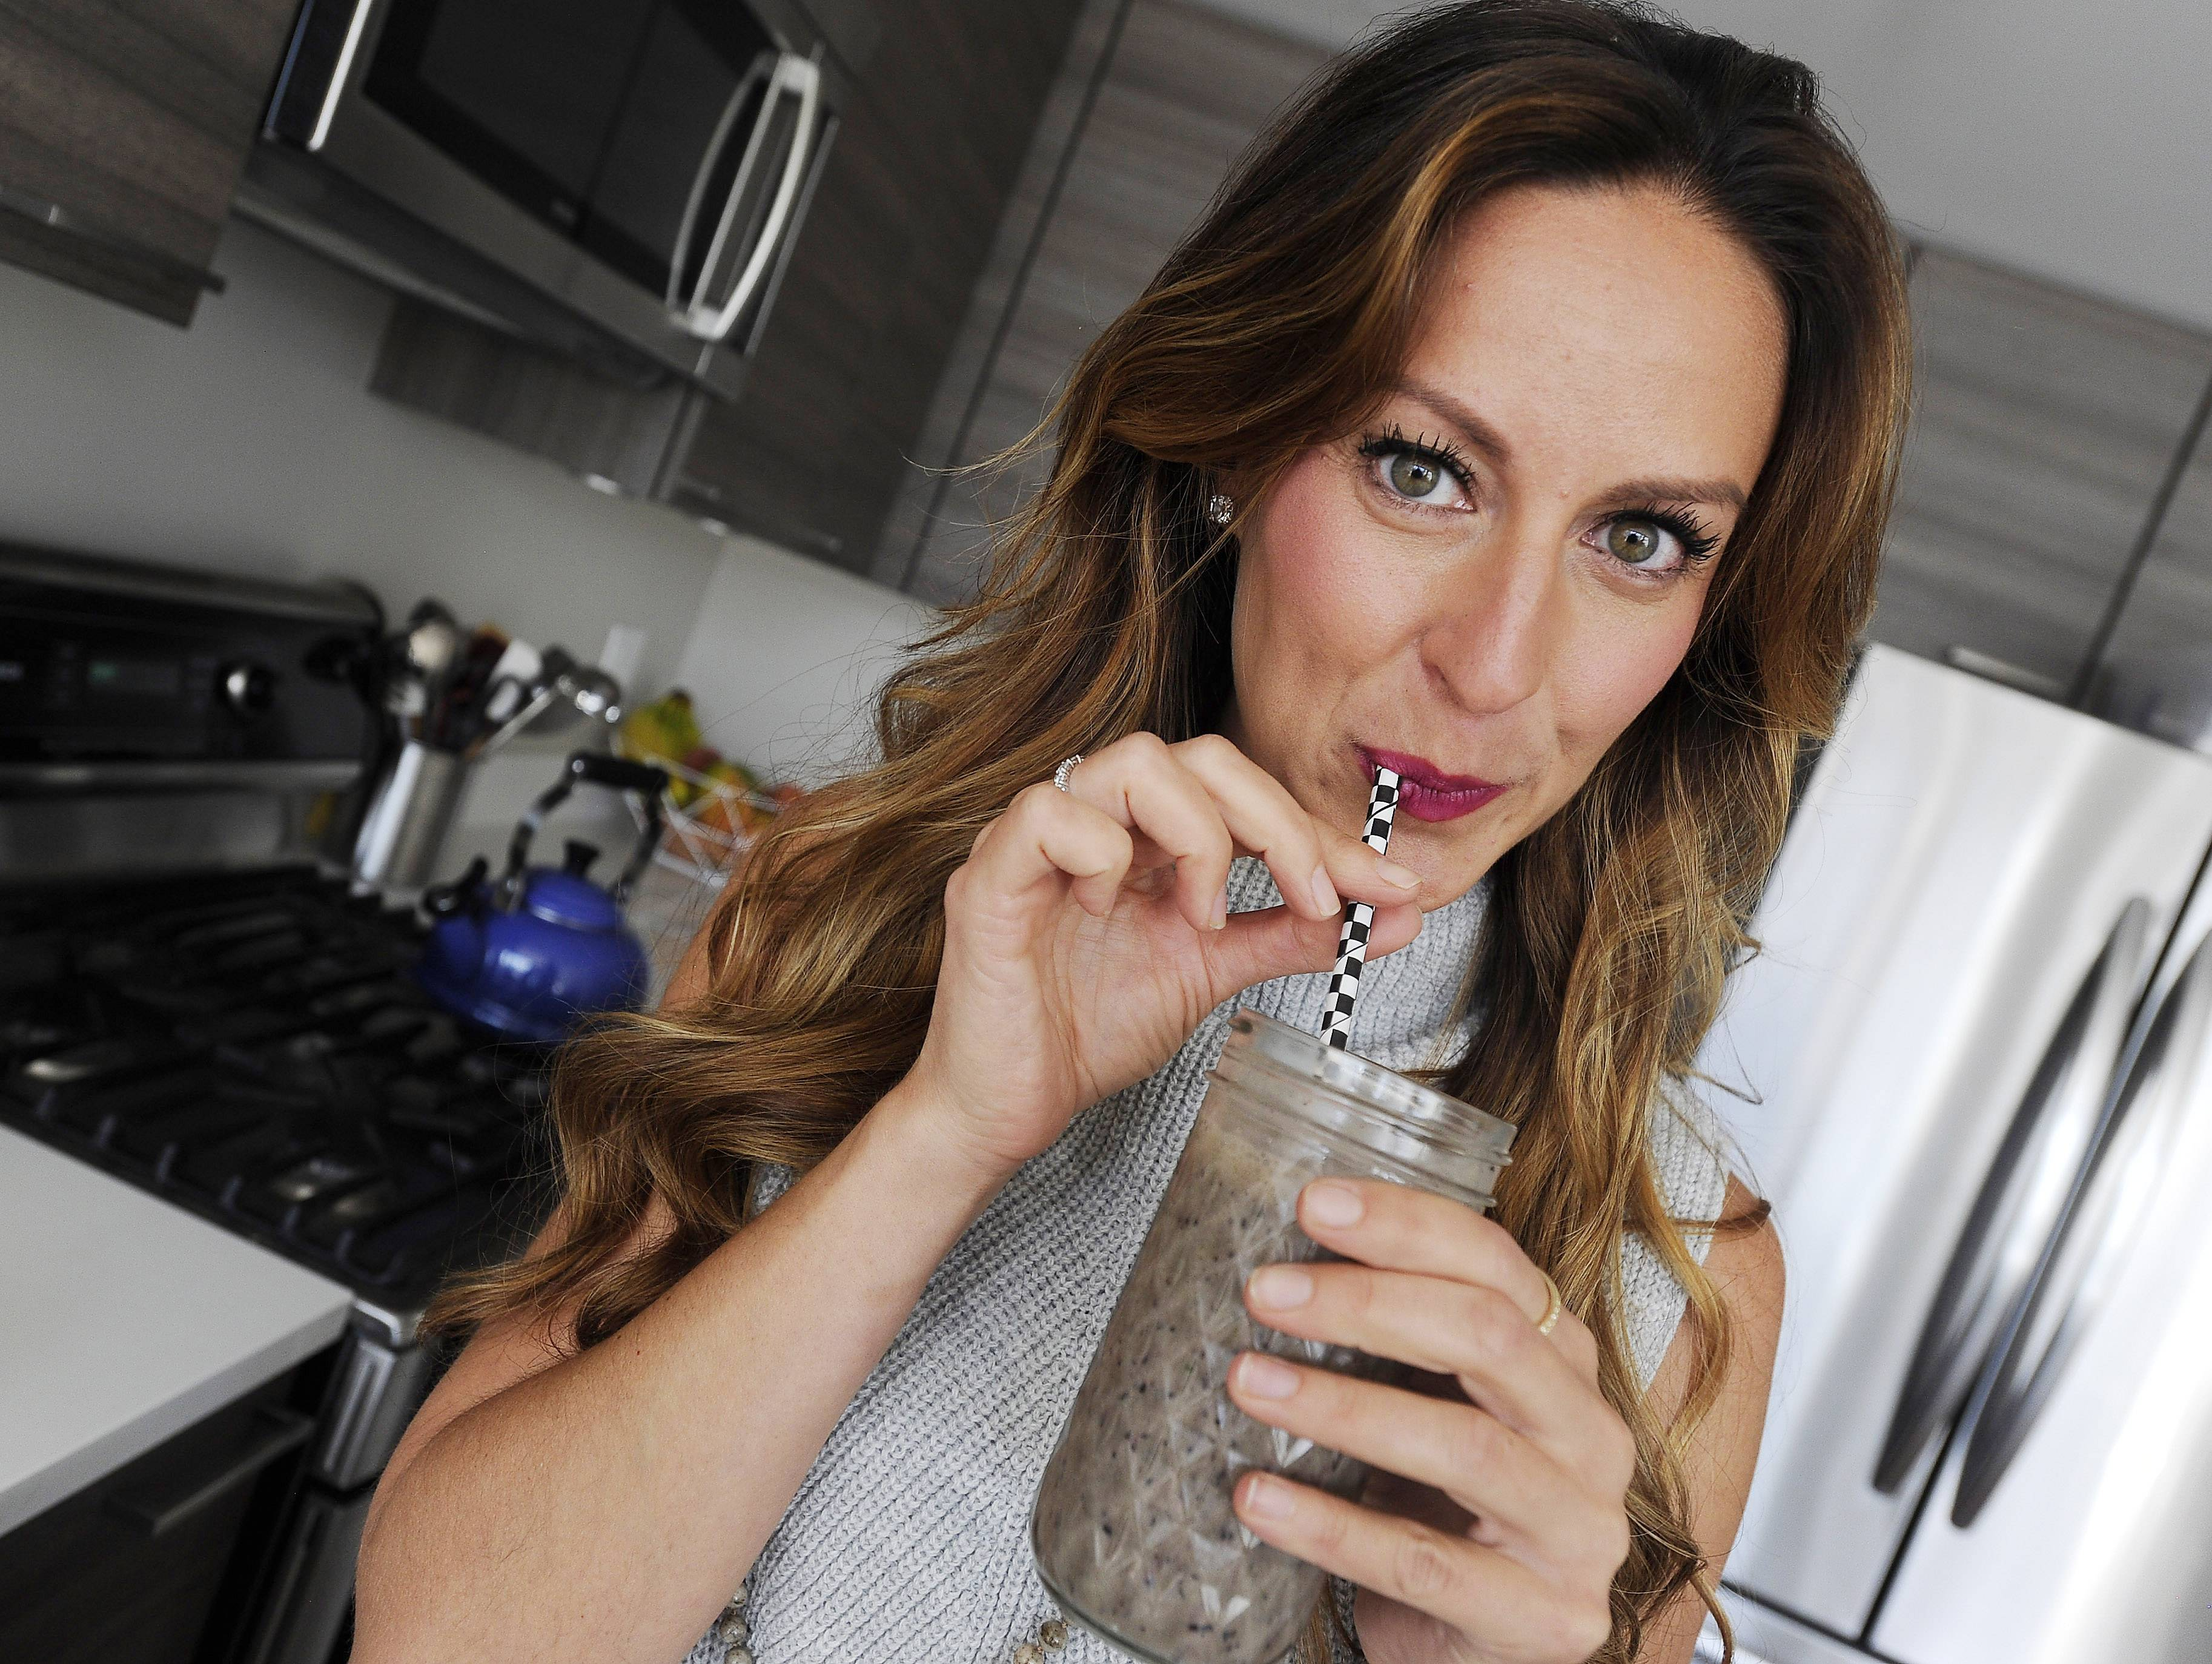 Mount Prospect native Kendra Peterson is the founder of Drizzle Kitchen, a private chef service company. She samples one of her smoothies, a drink she makes for her clients.